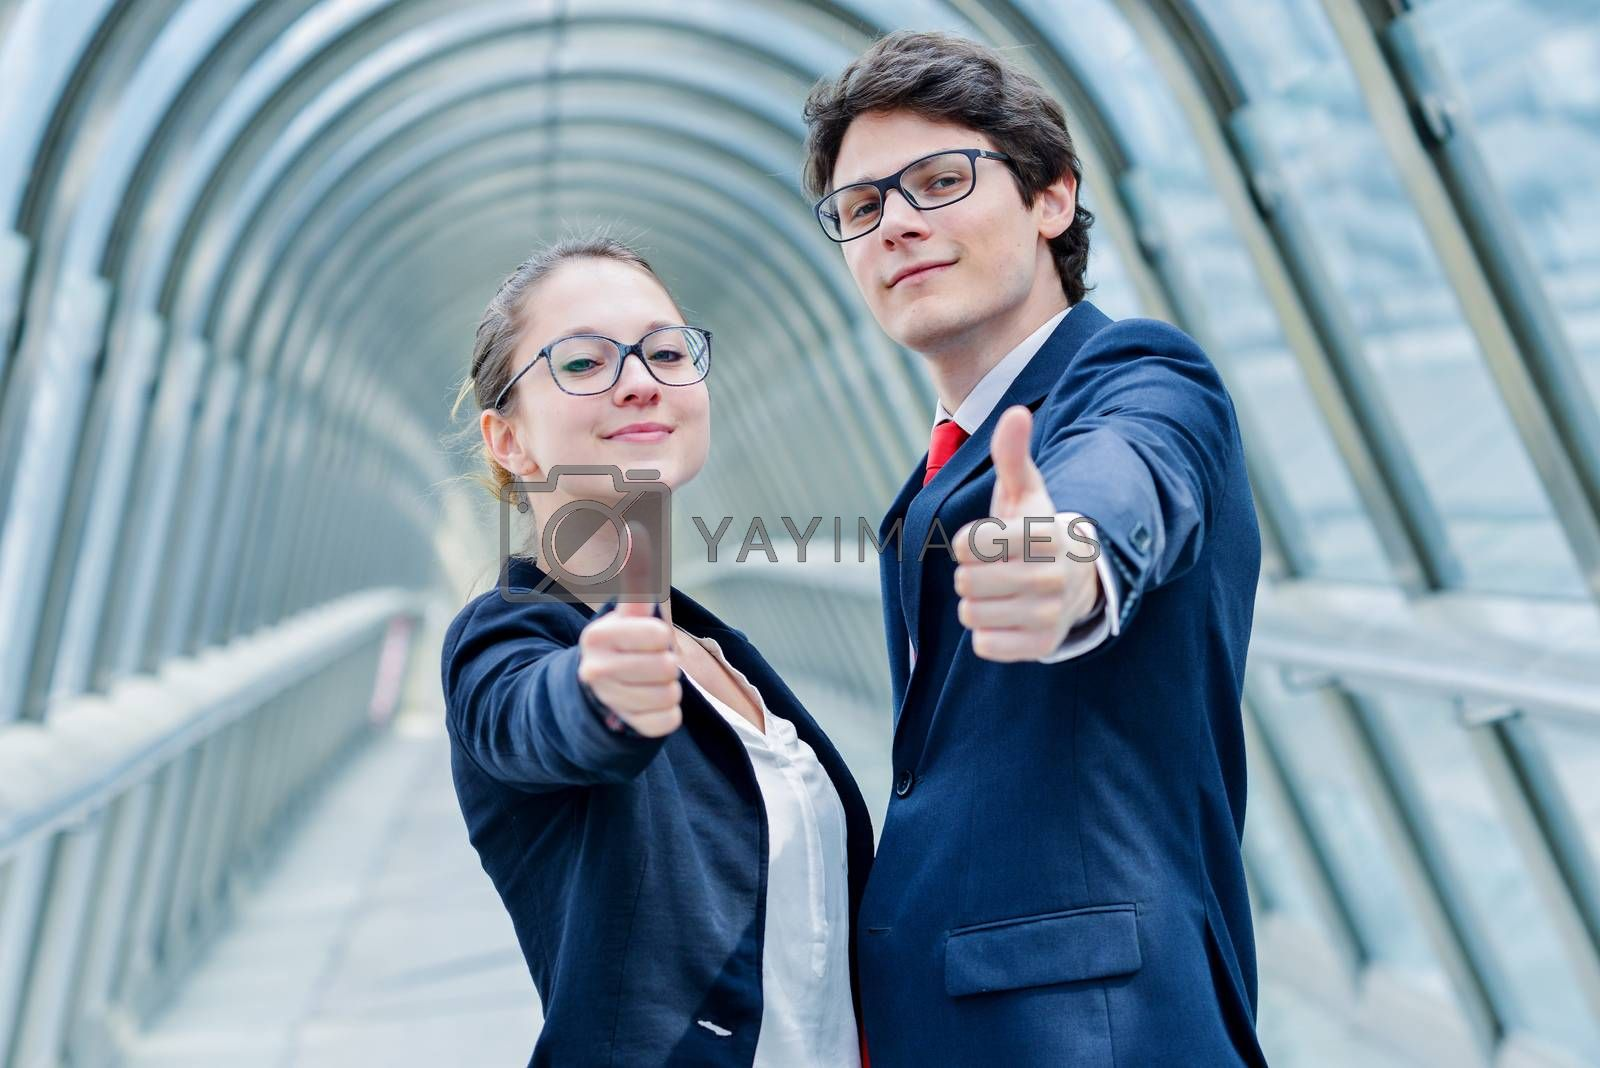 Royalty free image of expressive portrait of junior executives of company thumb up by pixinoo